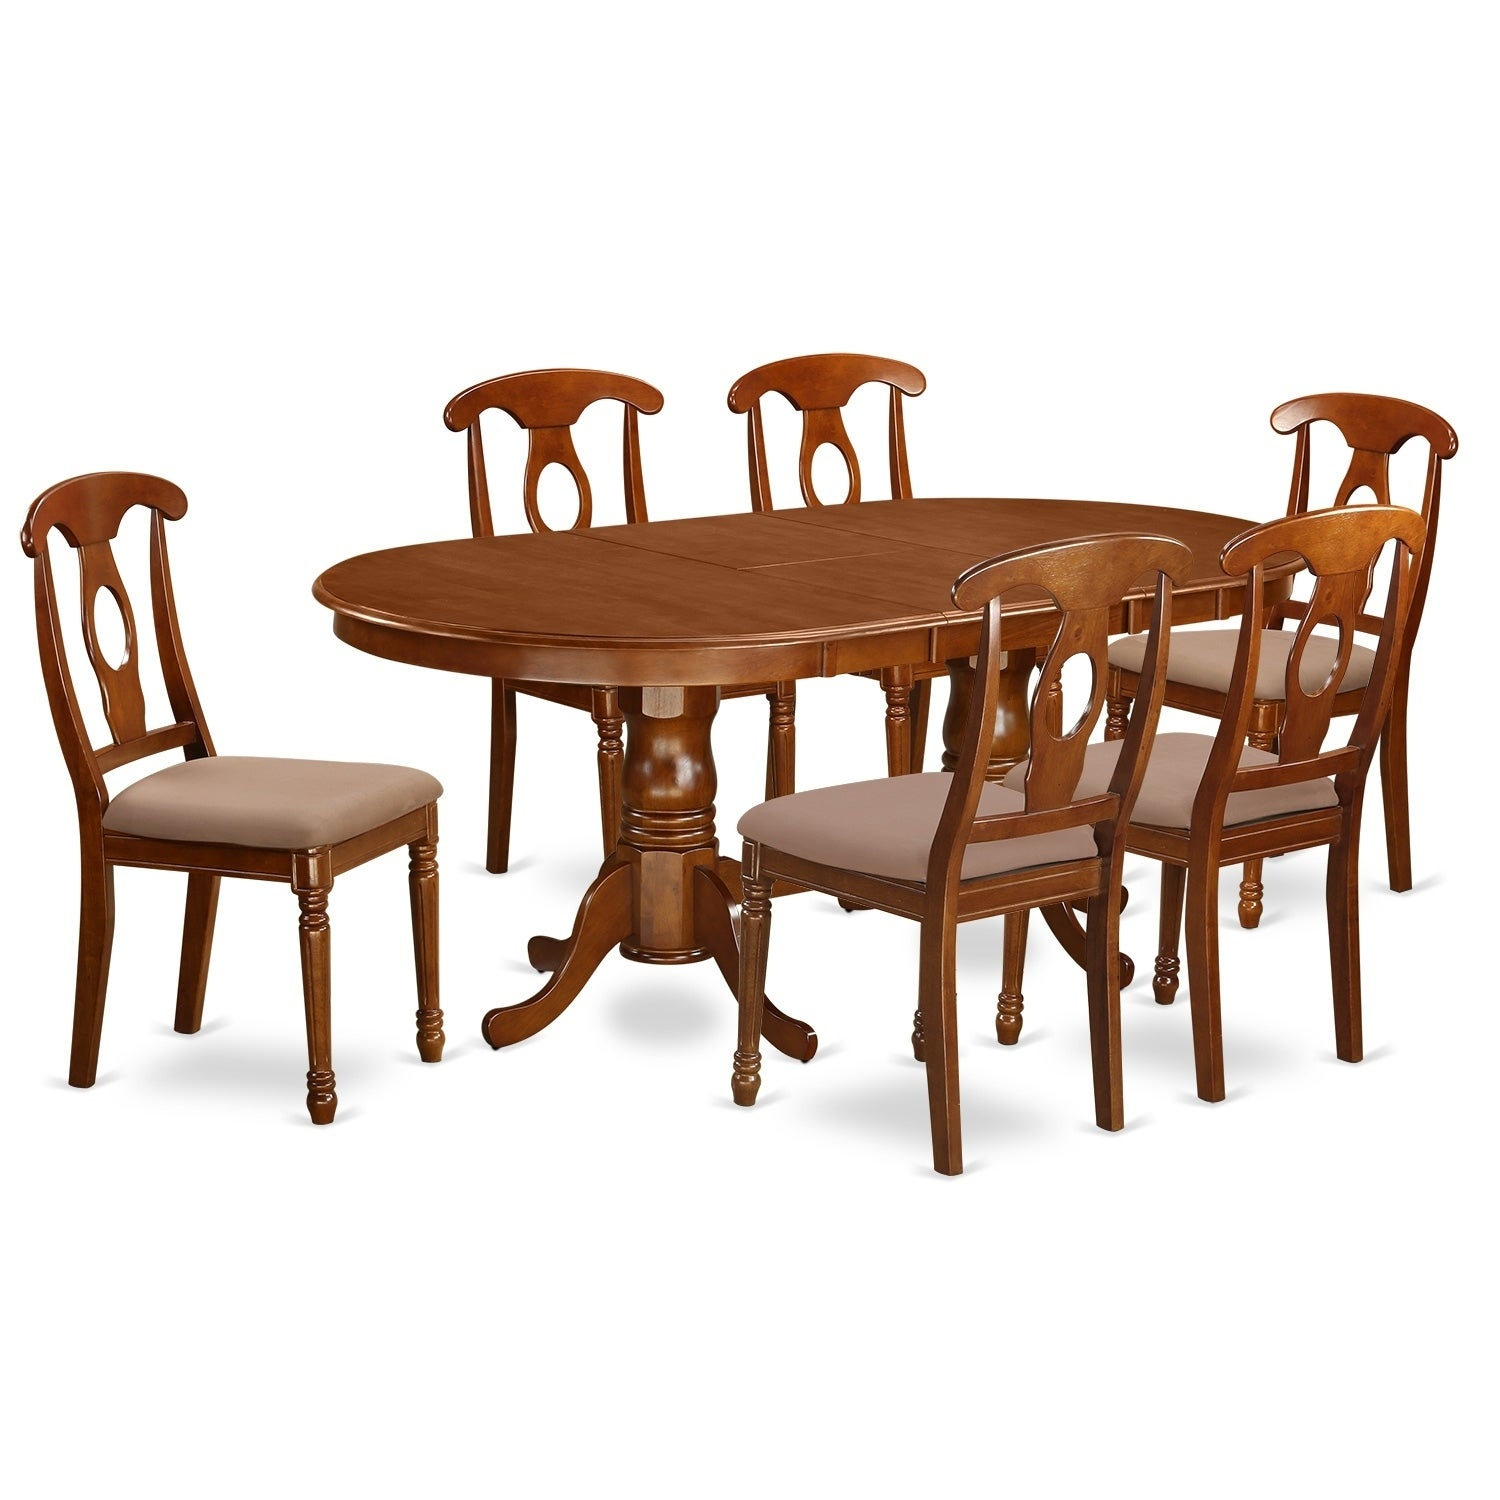 https://ak1.ostkcdn.com//images/products/17676497/PLNA7-SBR-7-PC-Dining-room-set-Dining-Table-with-6-Dining-Chairs-90c7497d-edd6-49e6-8293-2caa8e01ce84.jpg